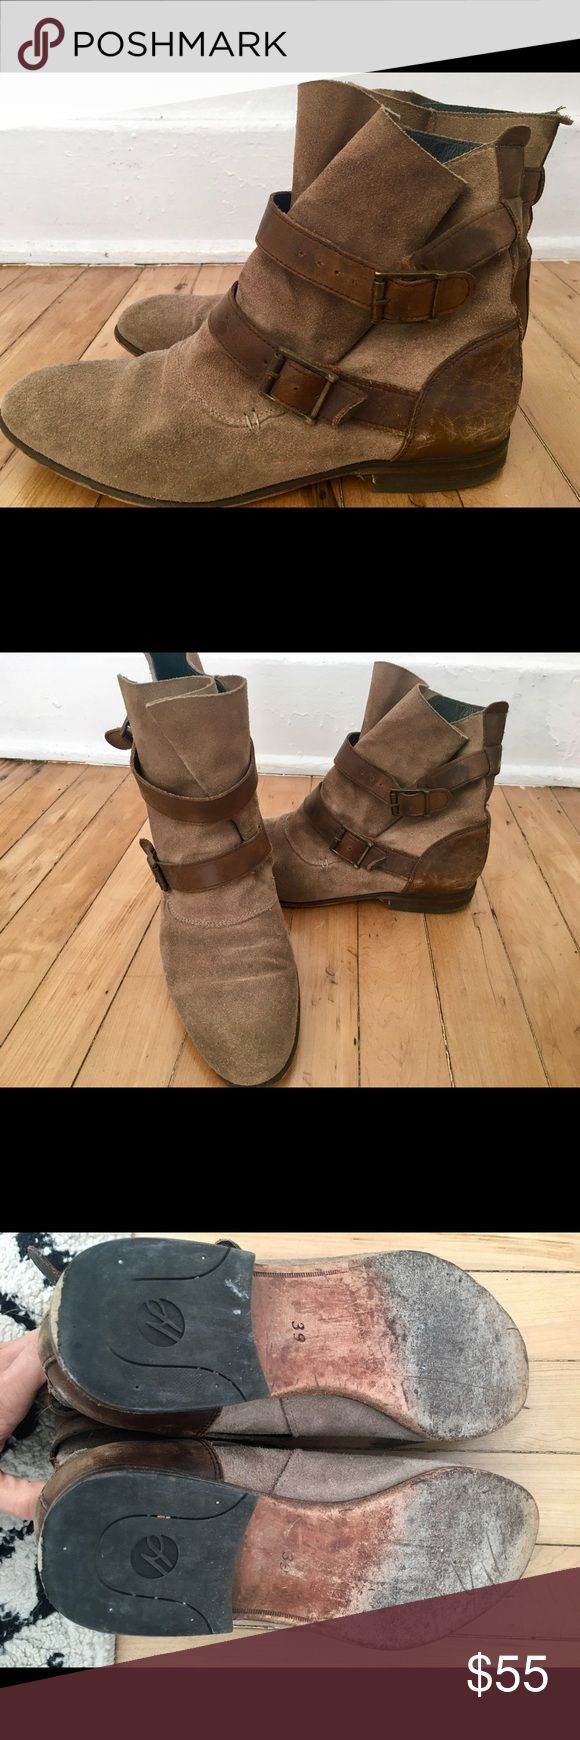 H BY HUDSON ankle boots. Tan /brown SZ 39 H BY HUDSON boots. Tan with brown leather. Has some wear and tear, just need to be cleaned up and maybe new heal sole. Size 39. I have insoles in so could fit smaller. 8.5 / 9 H By Hudson Shoes Ankle Boots & Booties